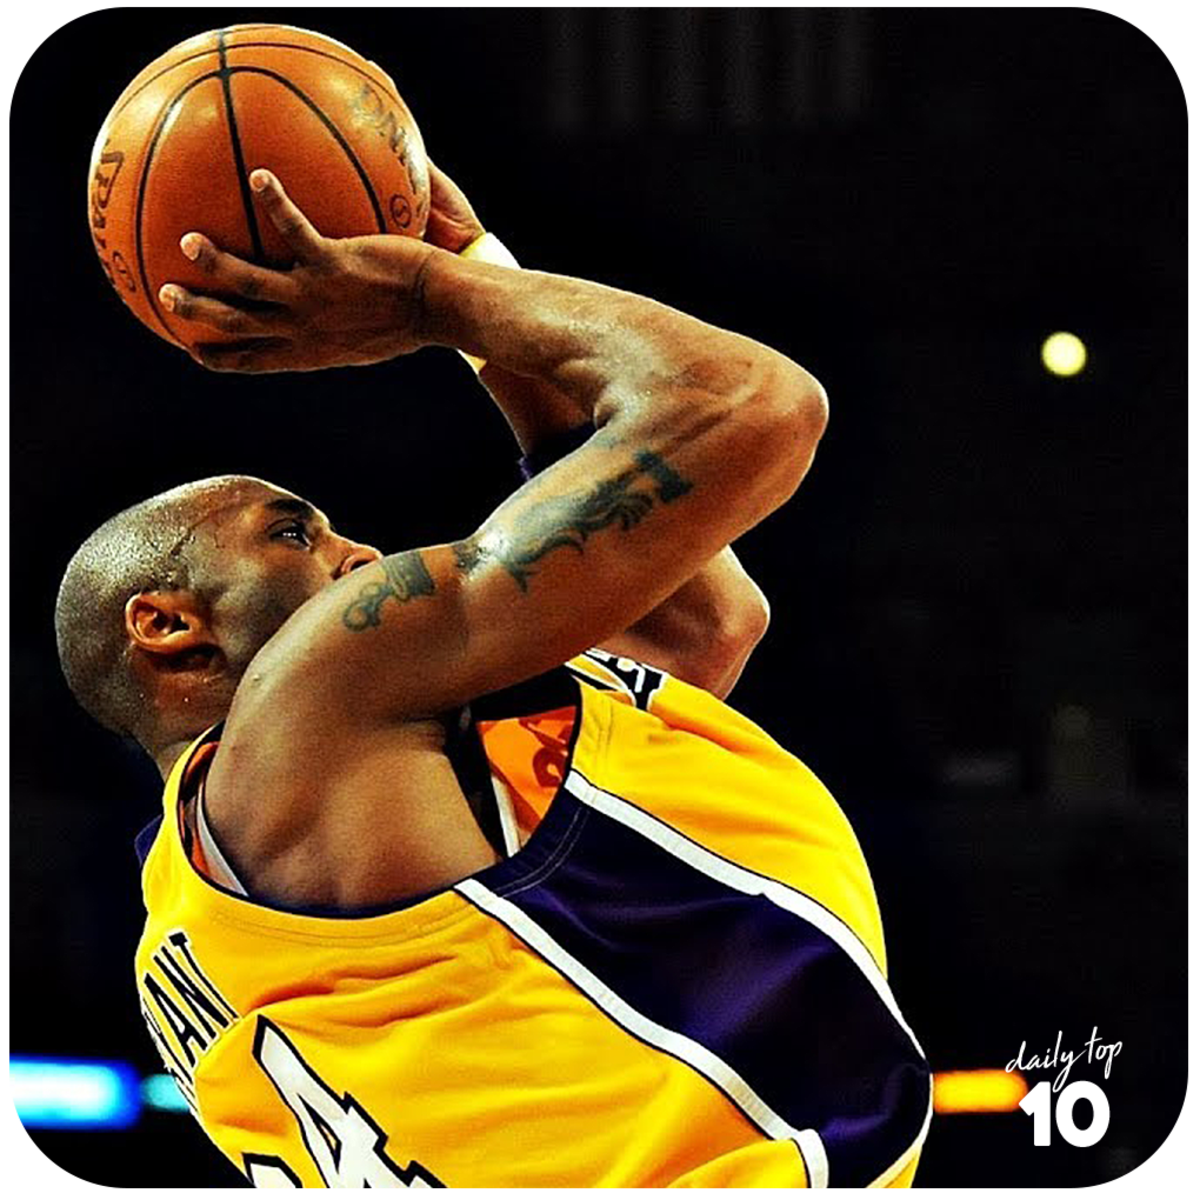 Kobe Bryant's fade away shot.